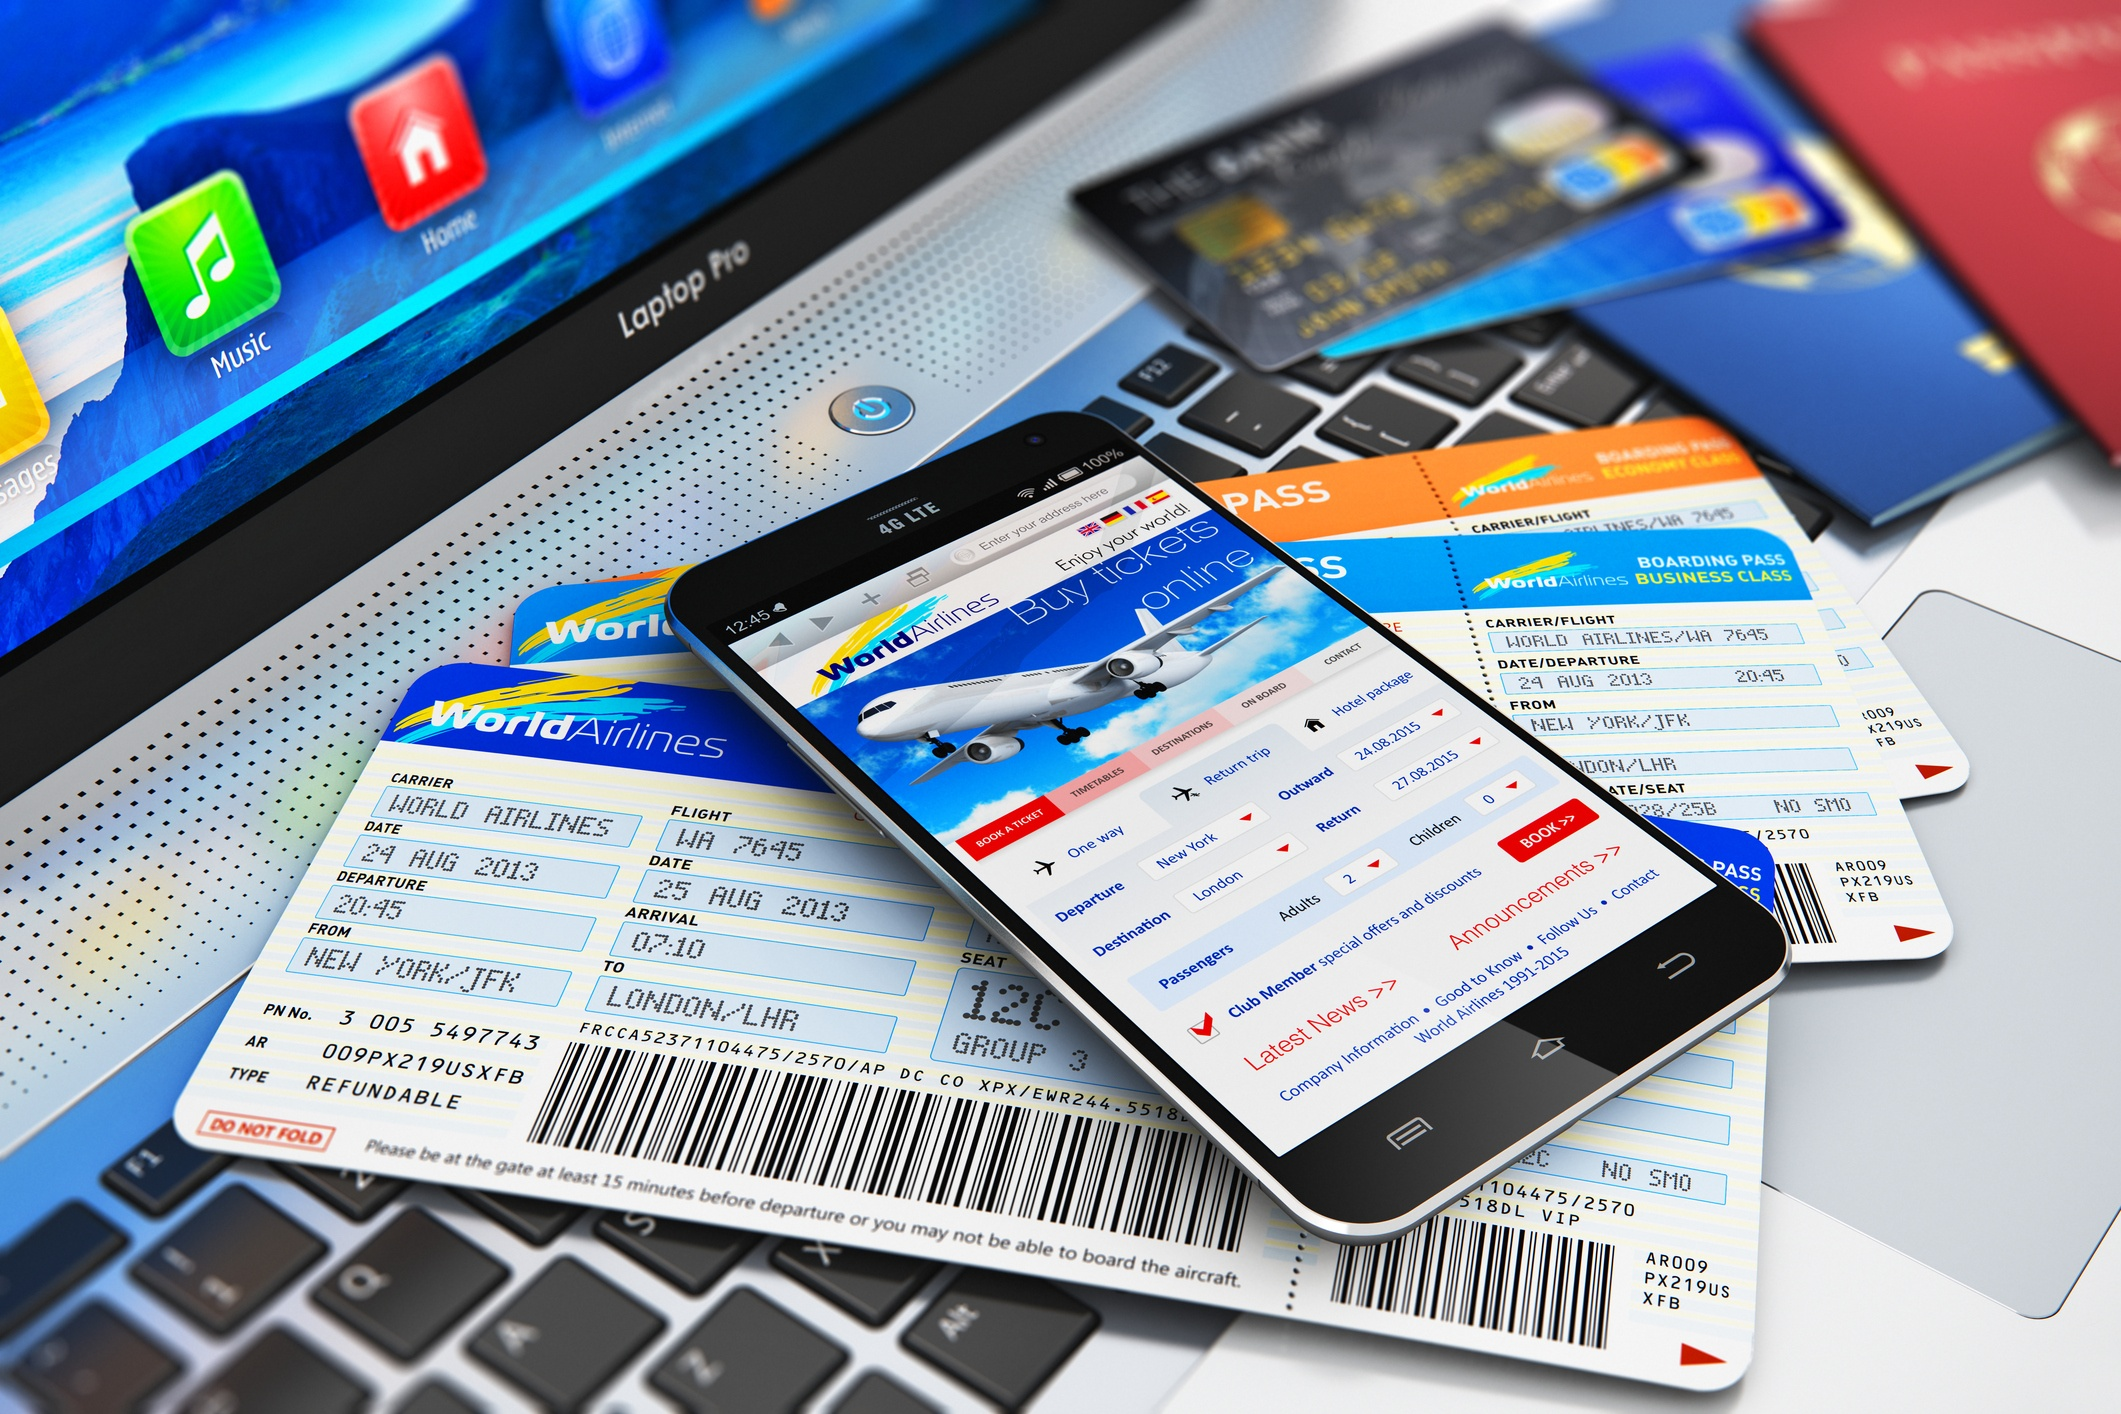 Digital Accessibility in Travel is Not a Luxury [Blog]